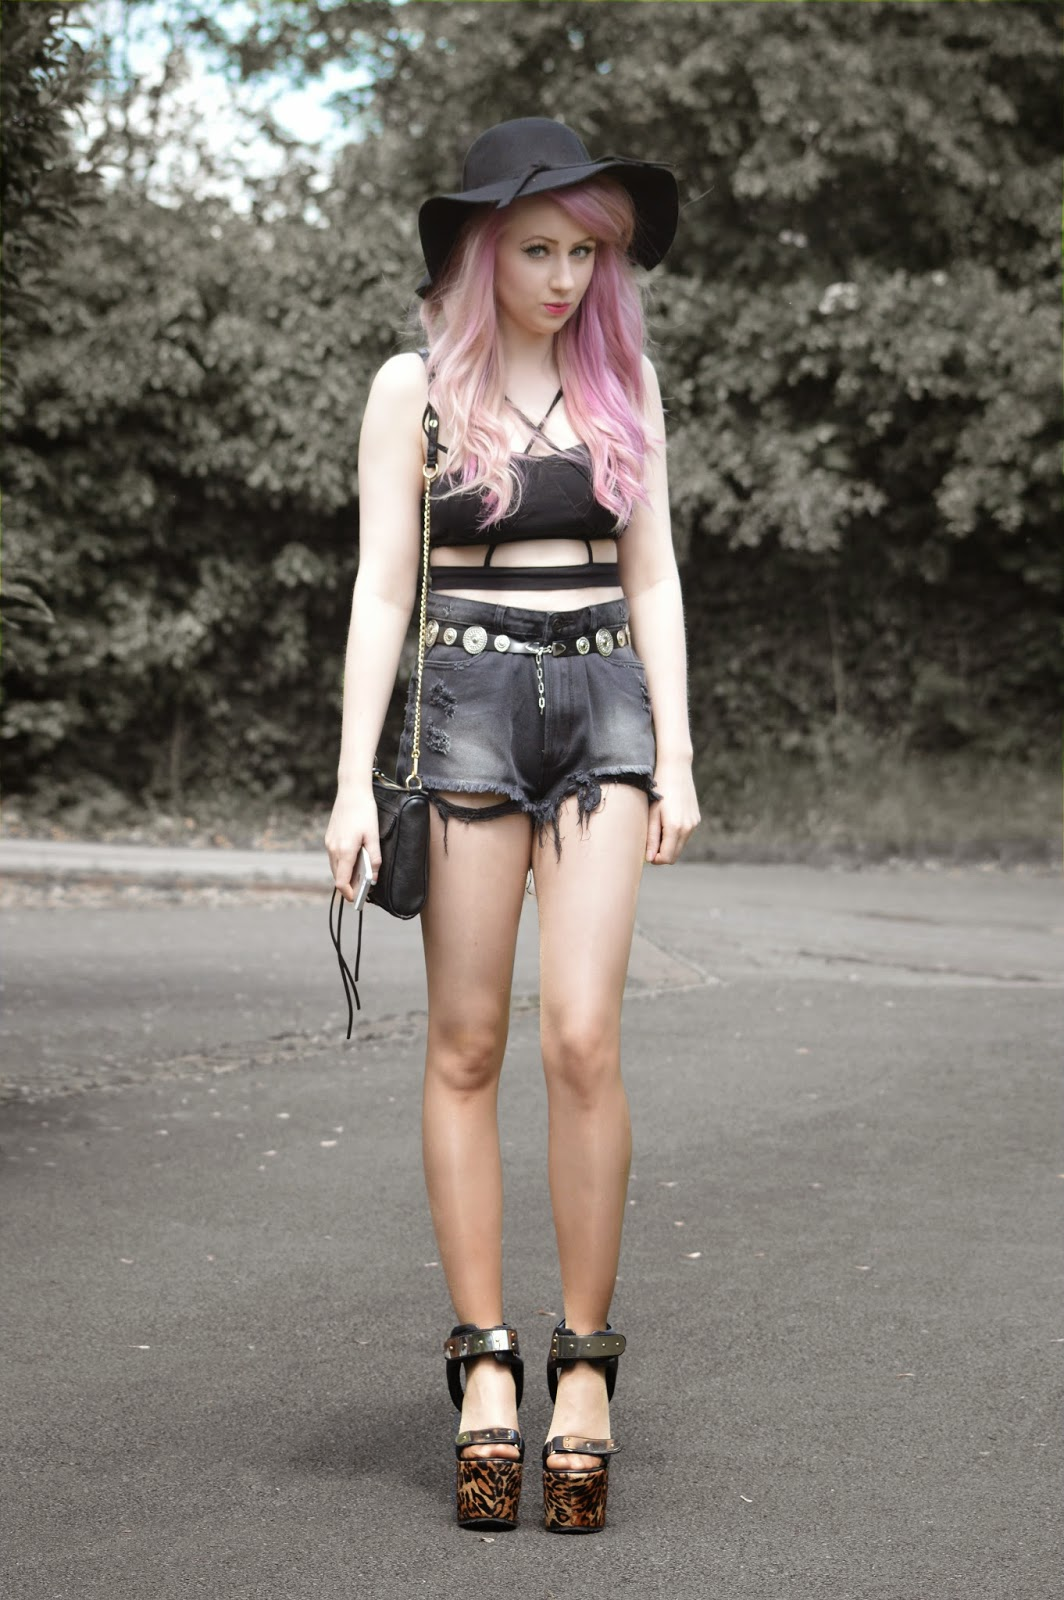 Sammi Jackson - 2 Ways to Wear Unif Hangover Shorts // Look 1